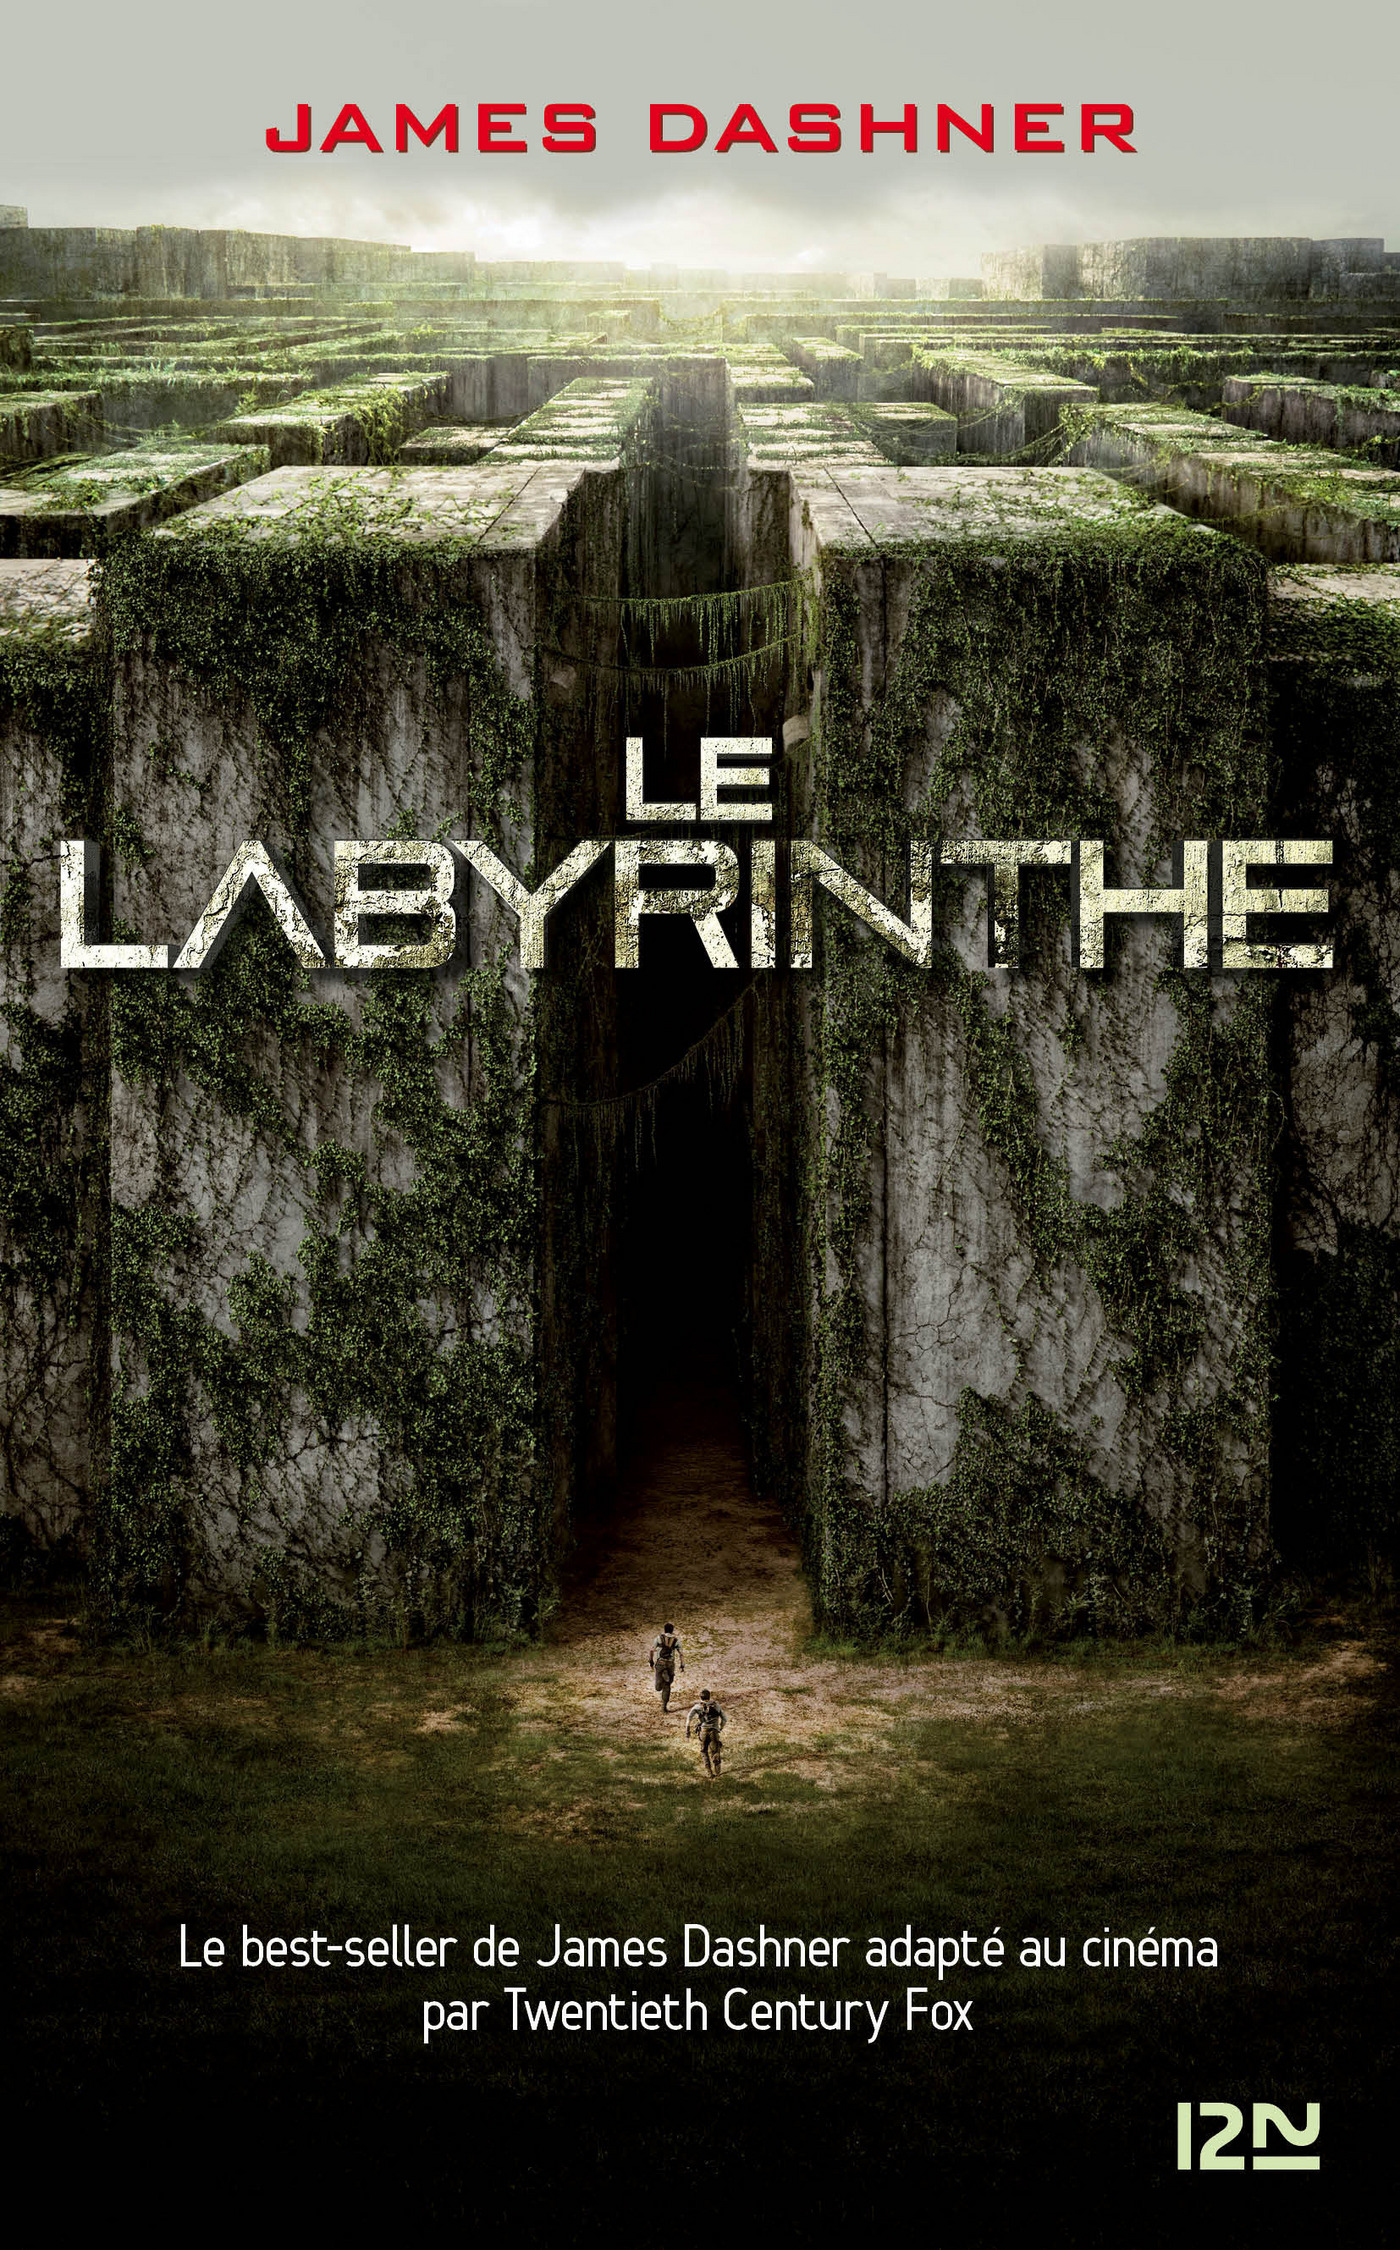 Couverture : L'épreuve T.1 : Le labyrinthe James Dashner